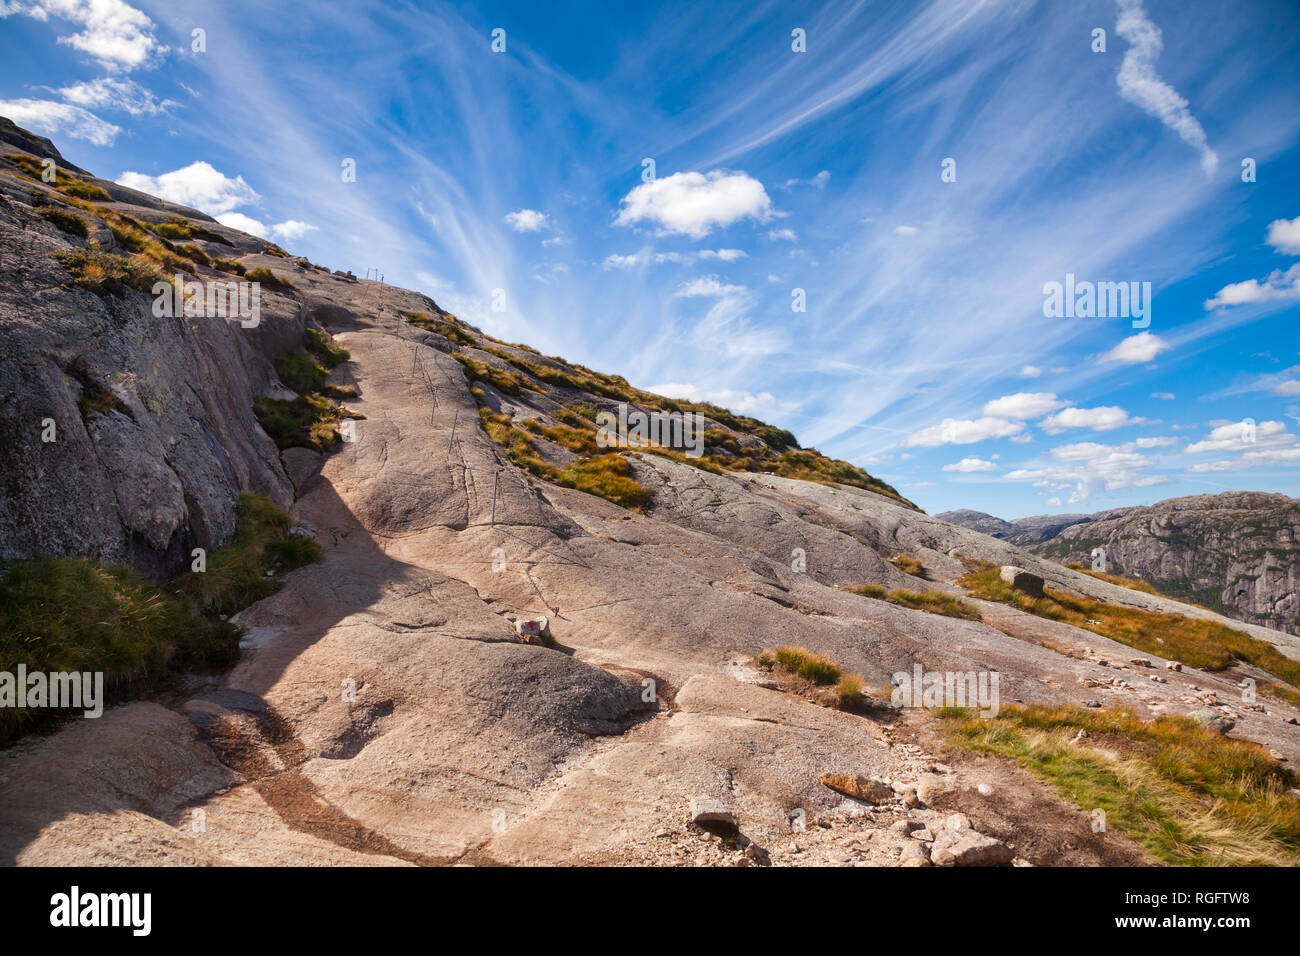 Marked mountain hiking trail along the Lysefjord to Kjeragbolten boulder at Kjerag (or Kiragg) Plateau, a popular travel destination in Forsand munici - Stock Image